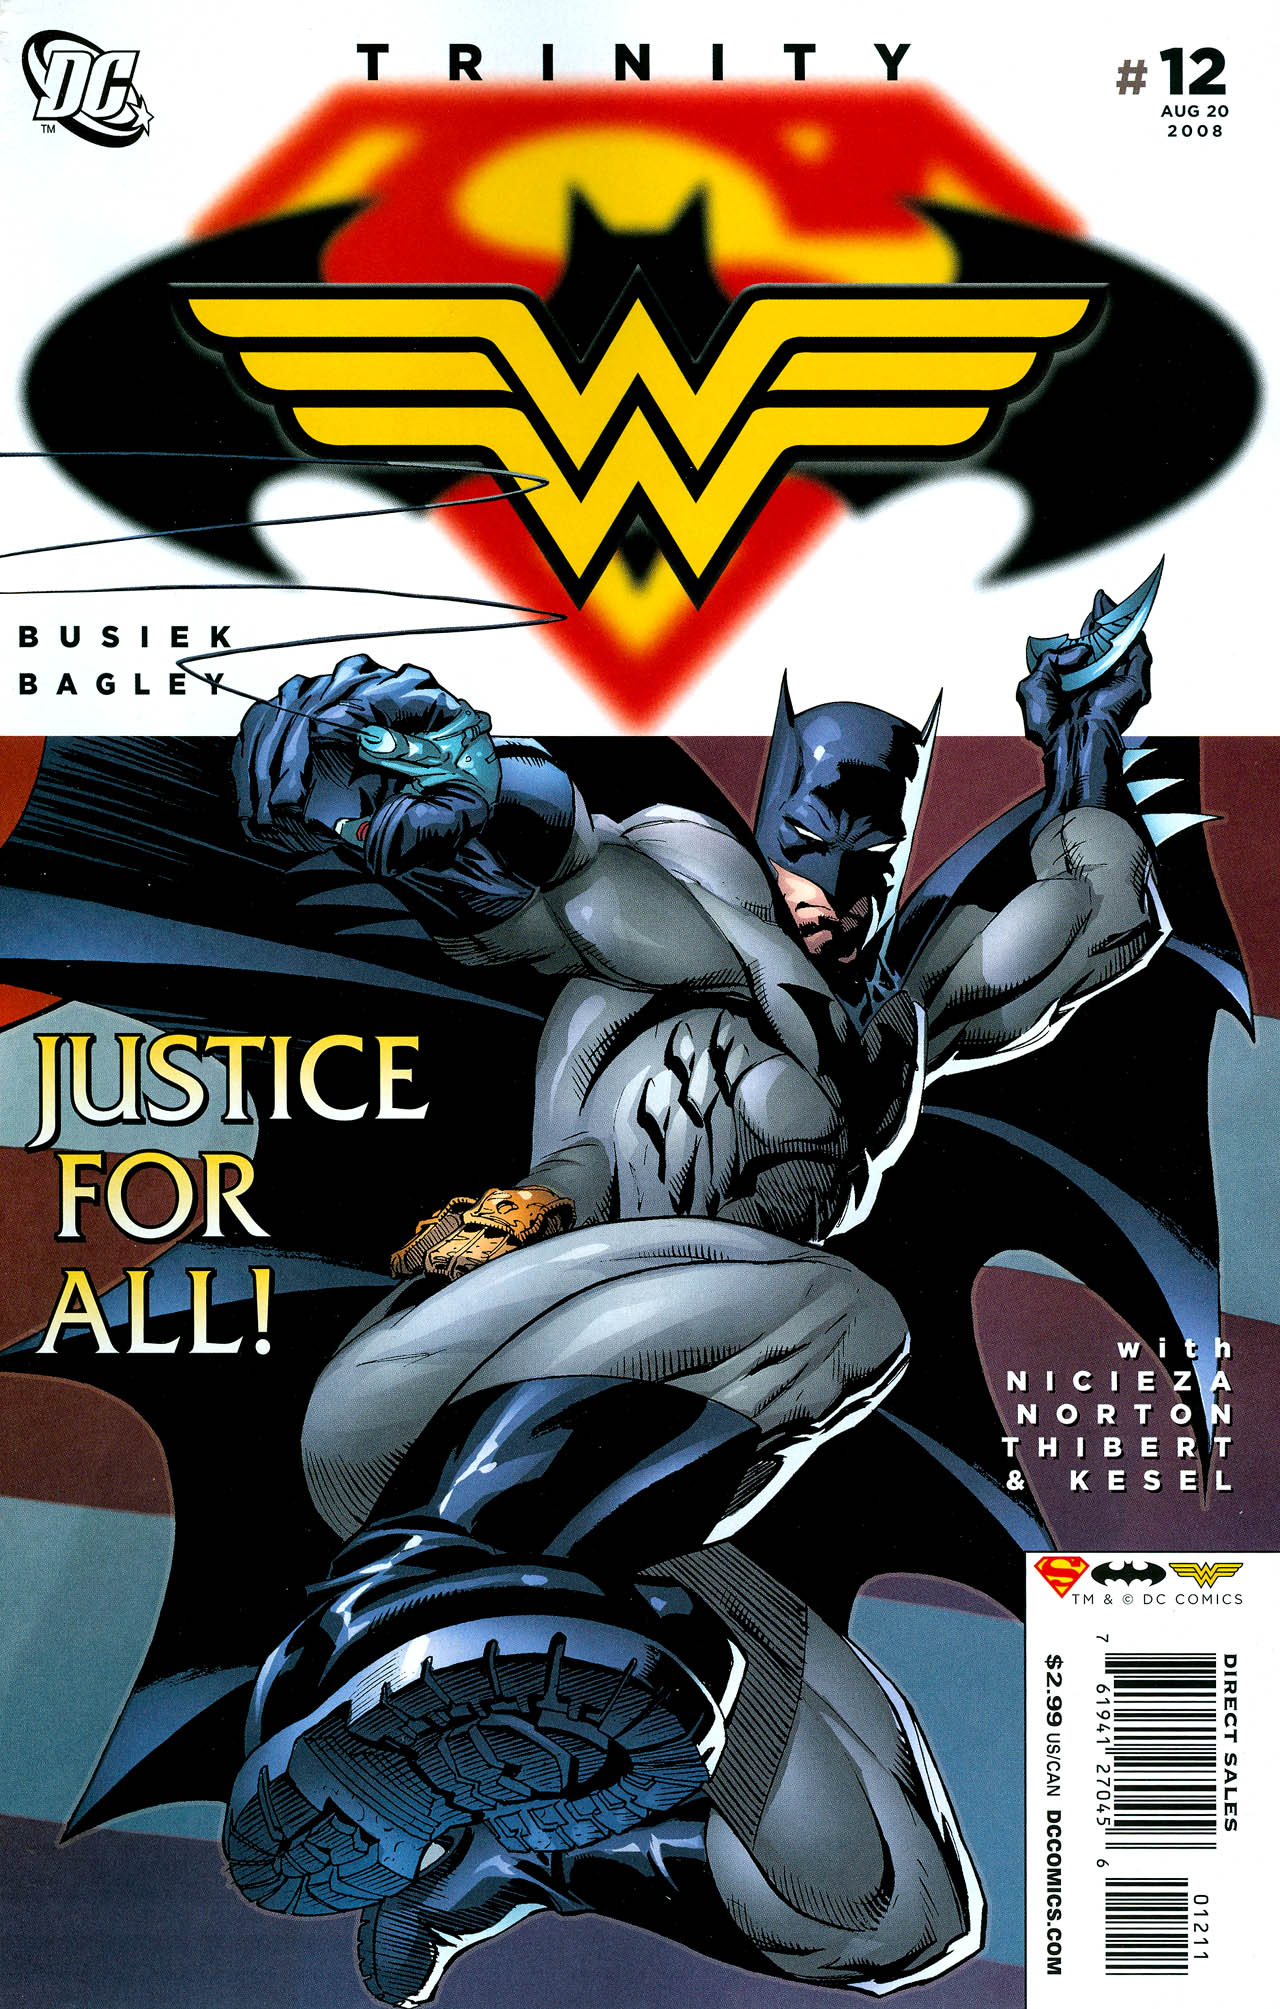 Read online Trinity (2008) comic -  Issue #12 - 1